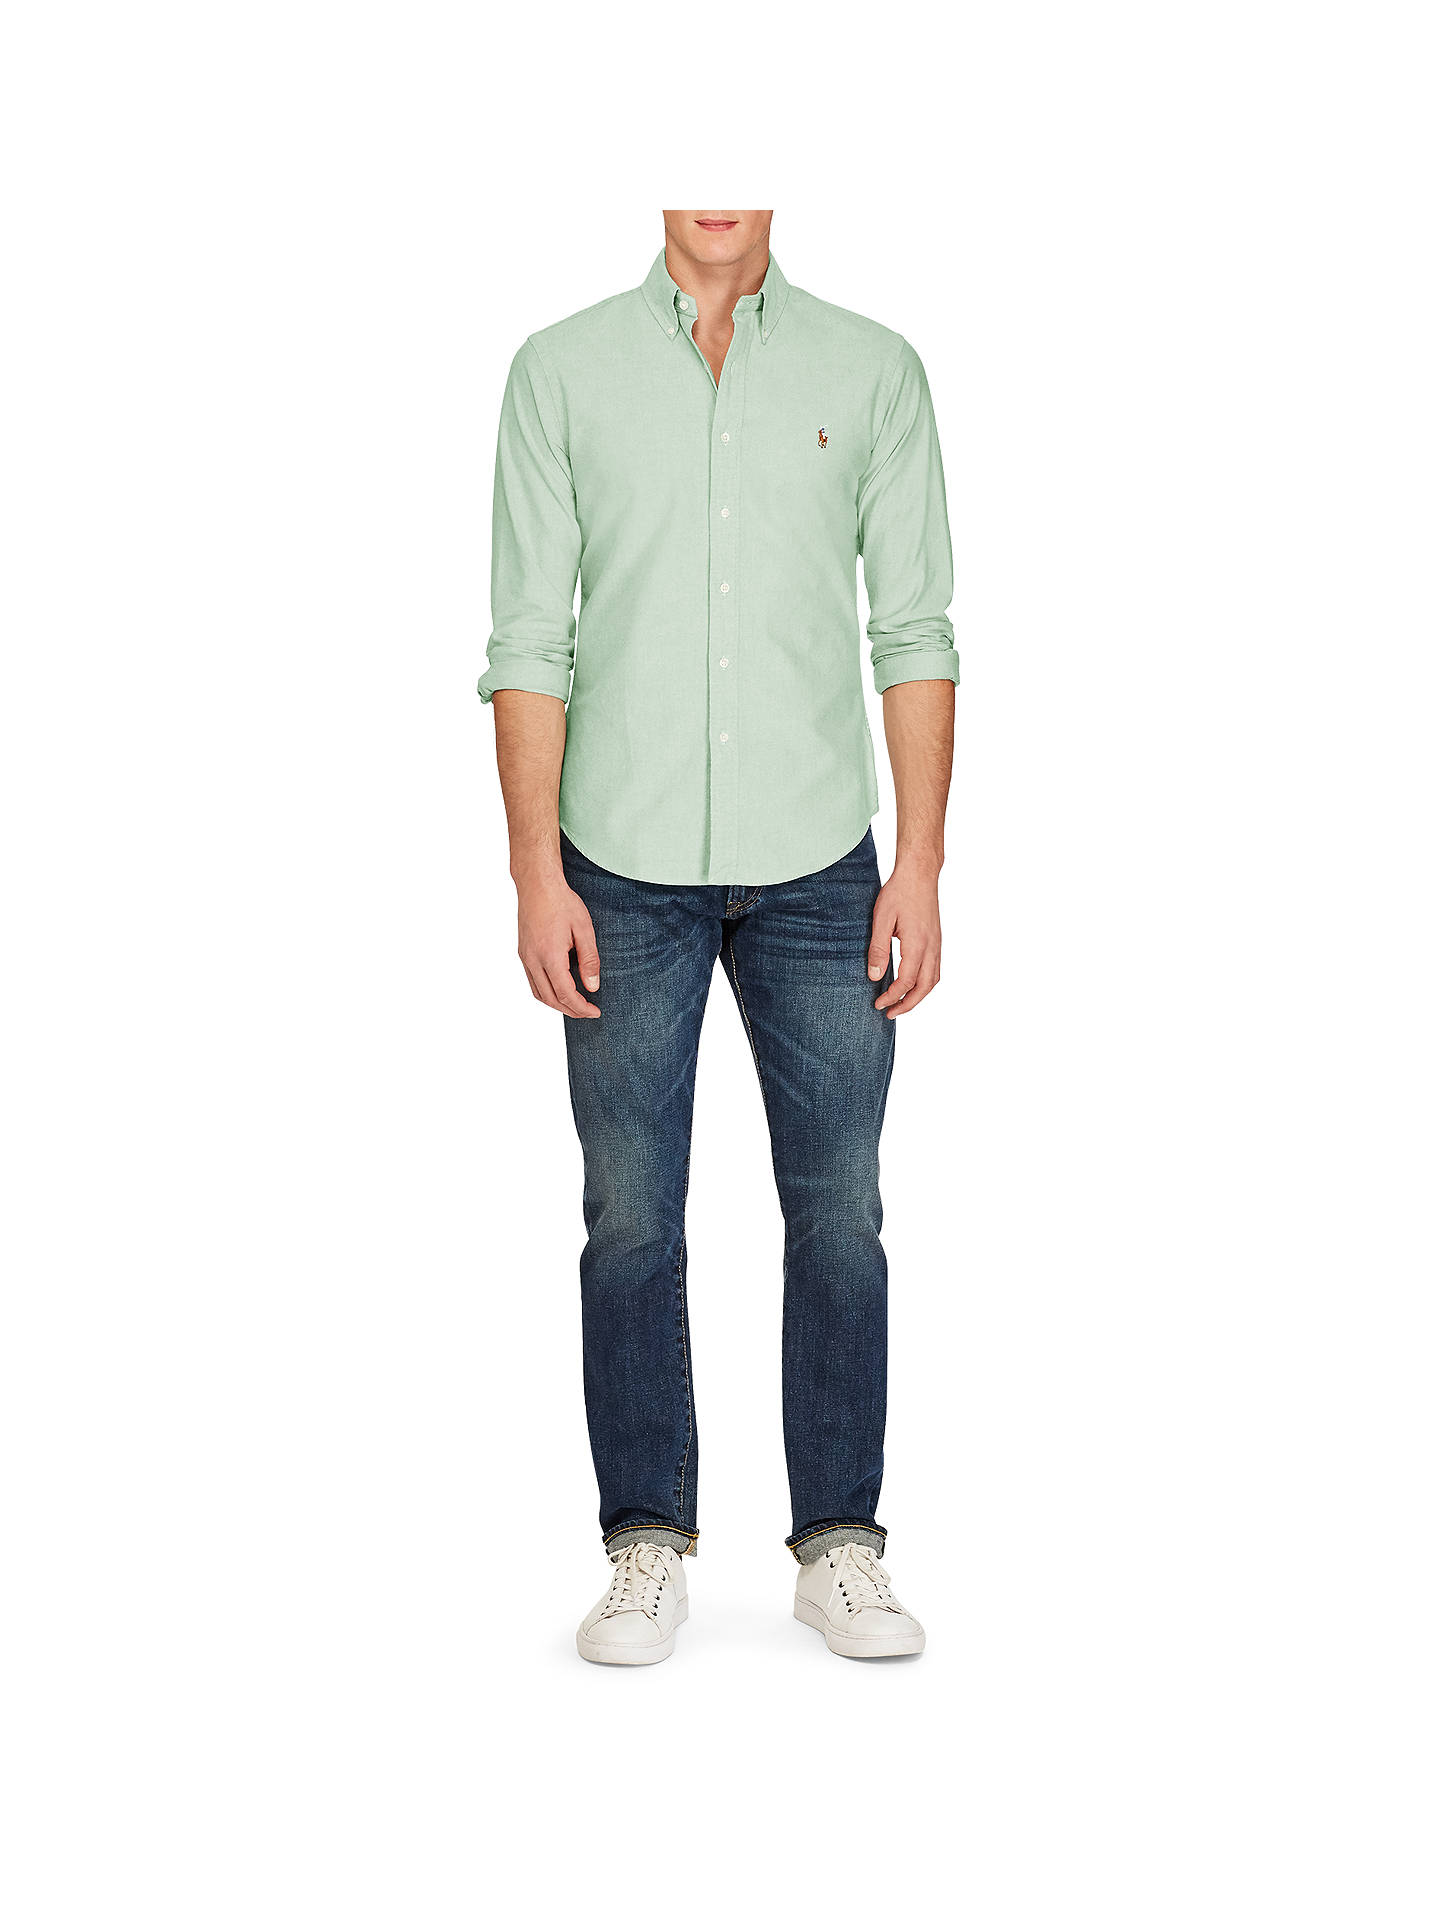 fa373e95 ... Buy Polo Ralph Lauren Cotton Oxford Slim Fit Shirt, Green/White, S  Online